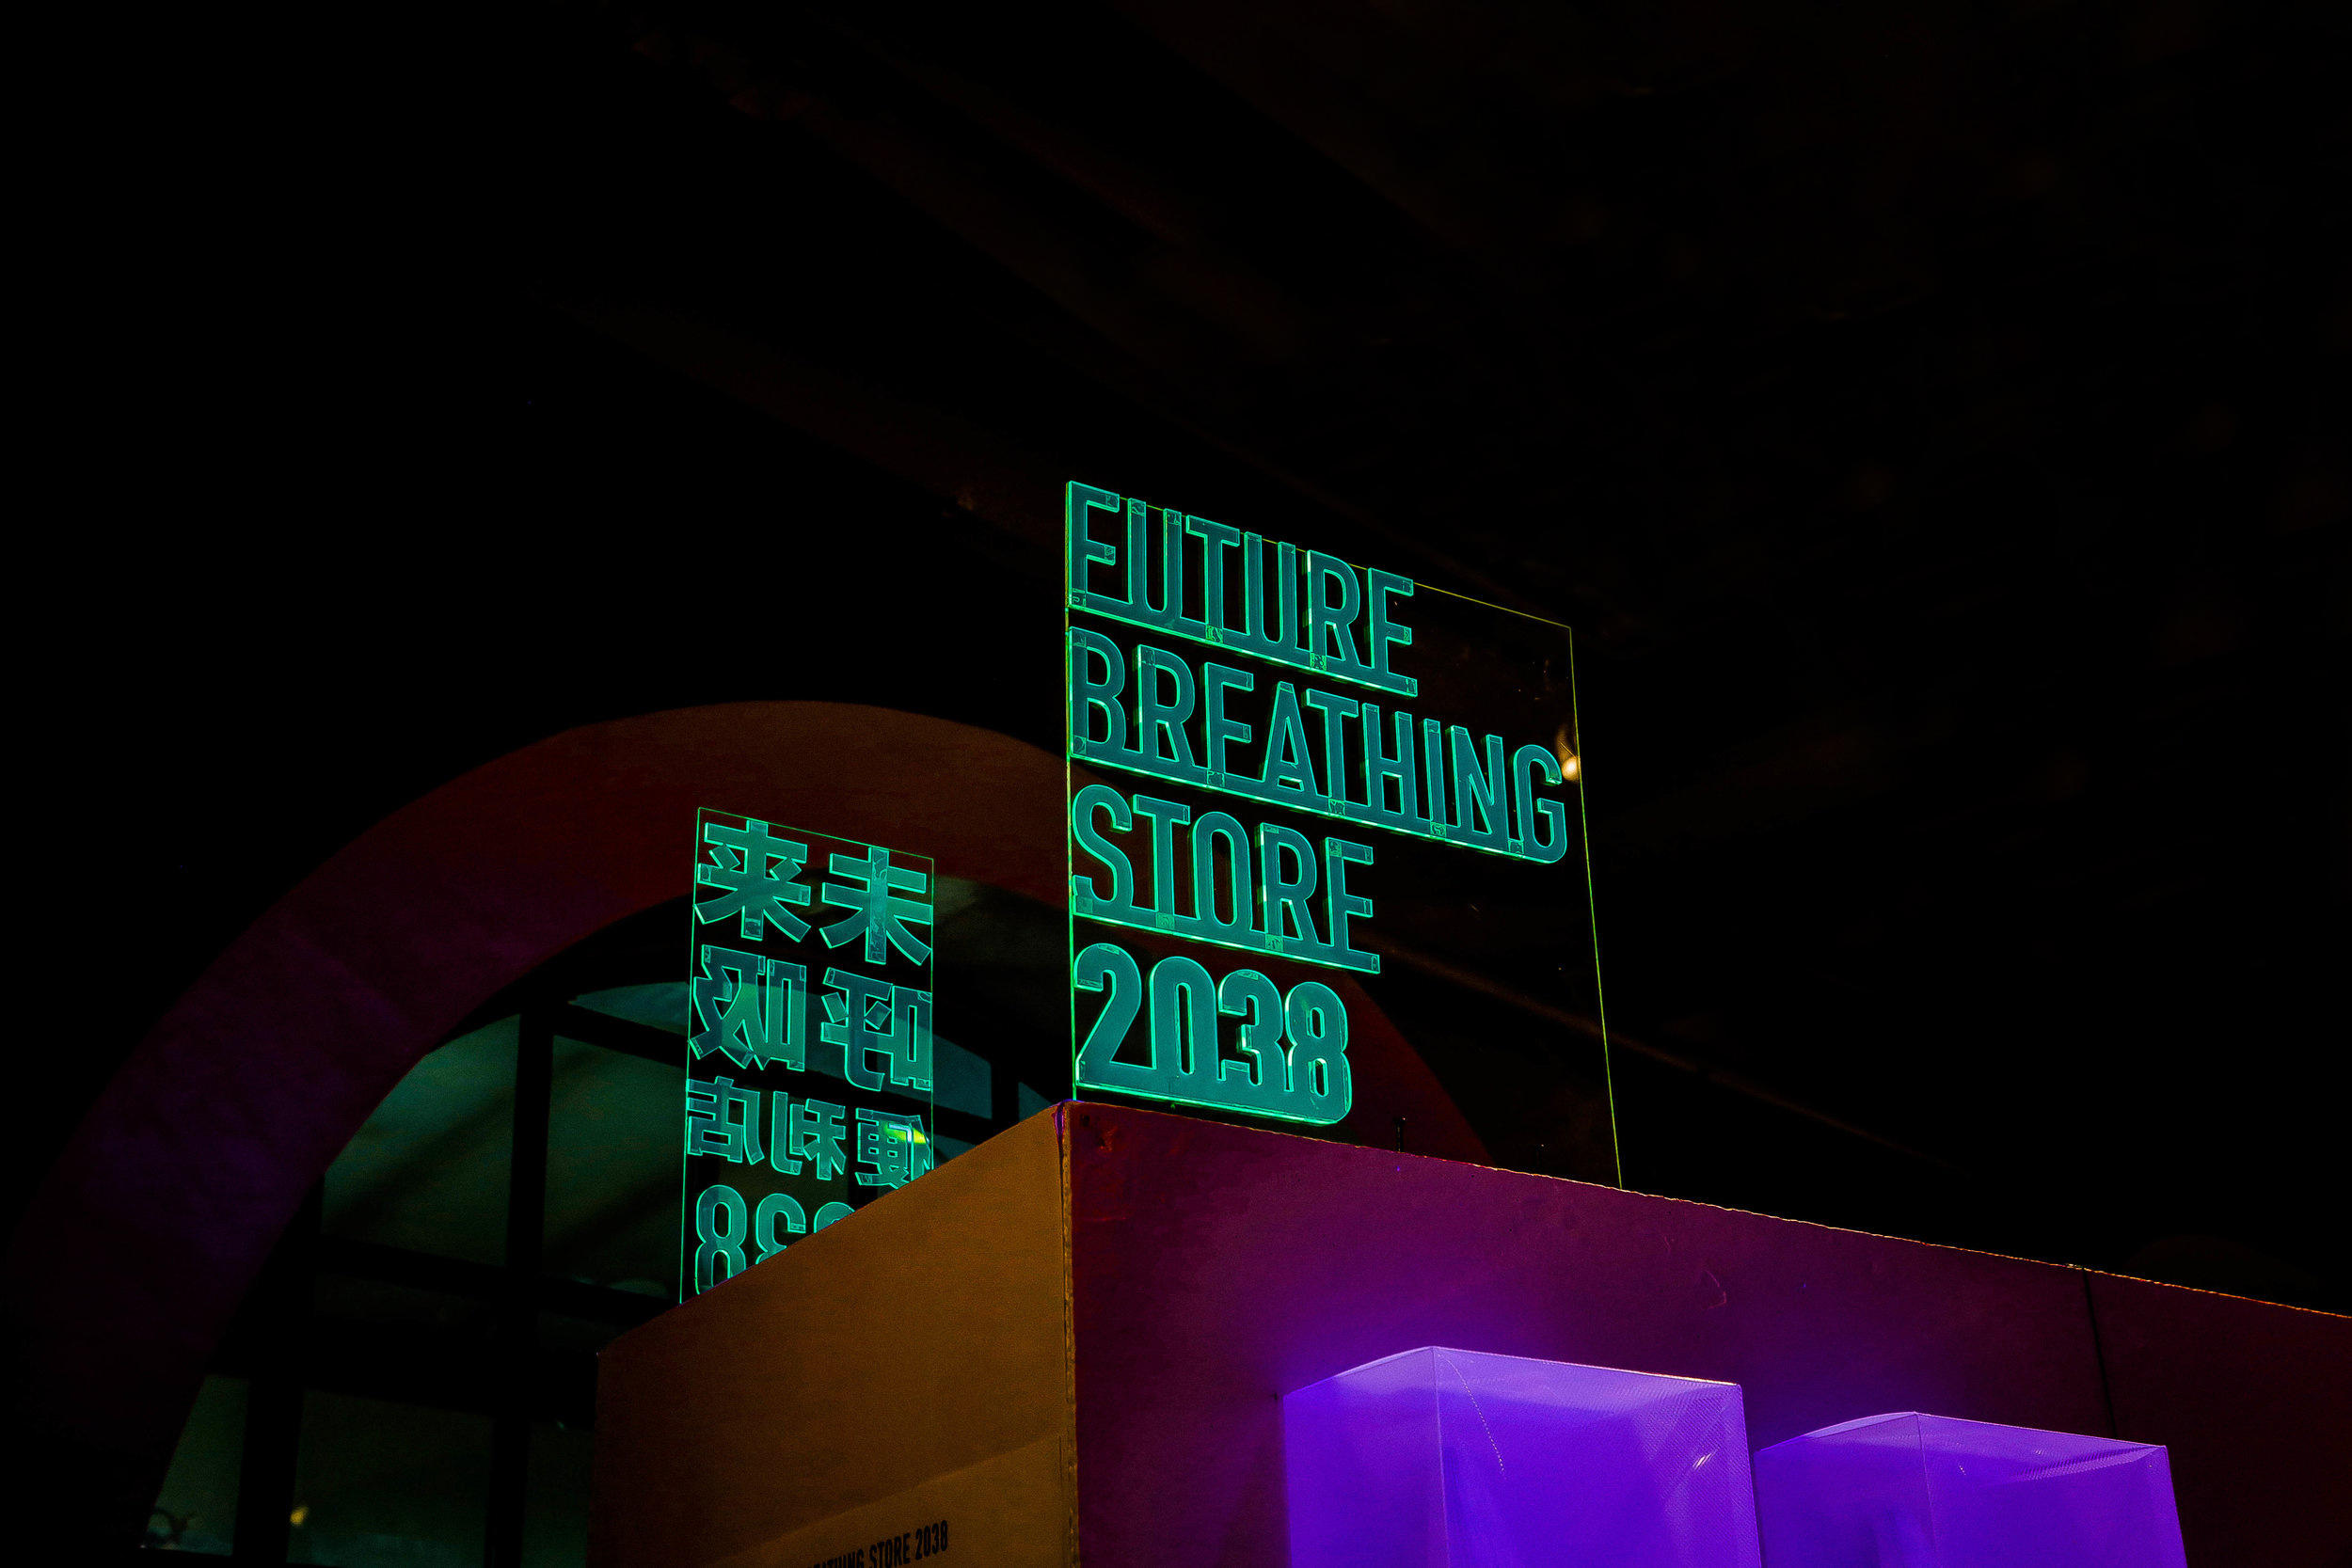 Future Breathing Store 2038: an alternative perspective towards urban pollution